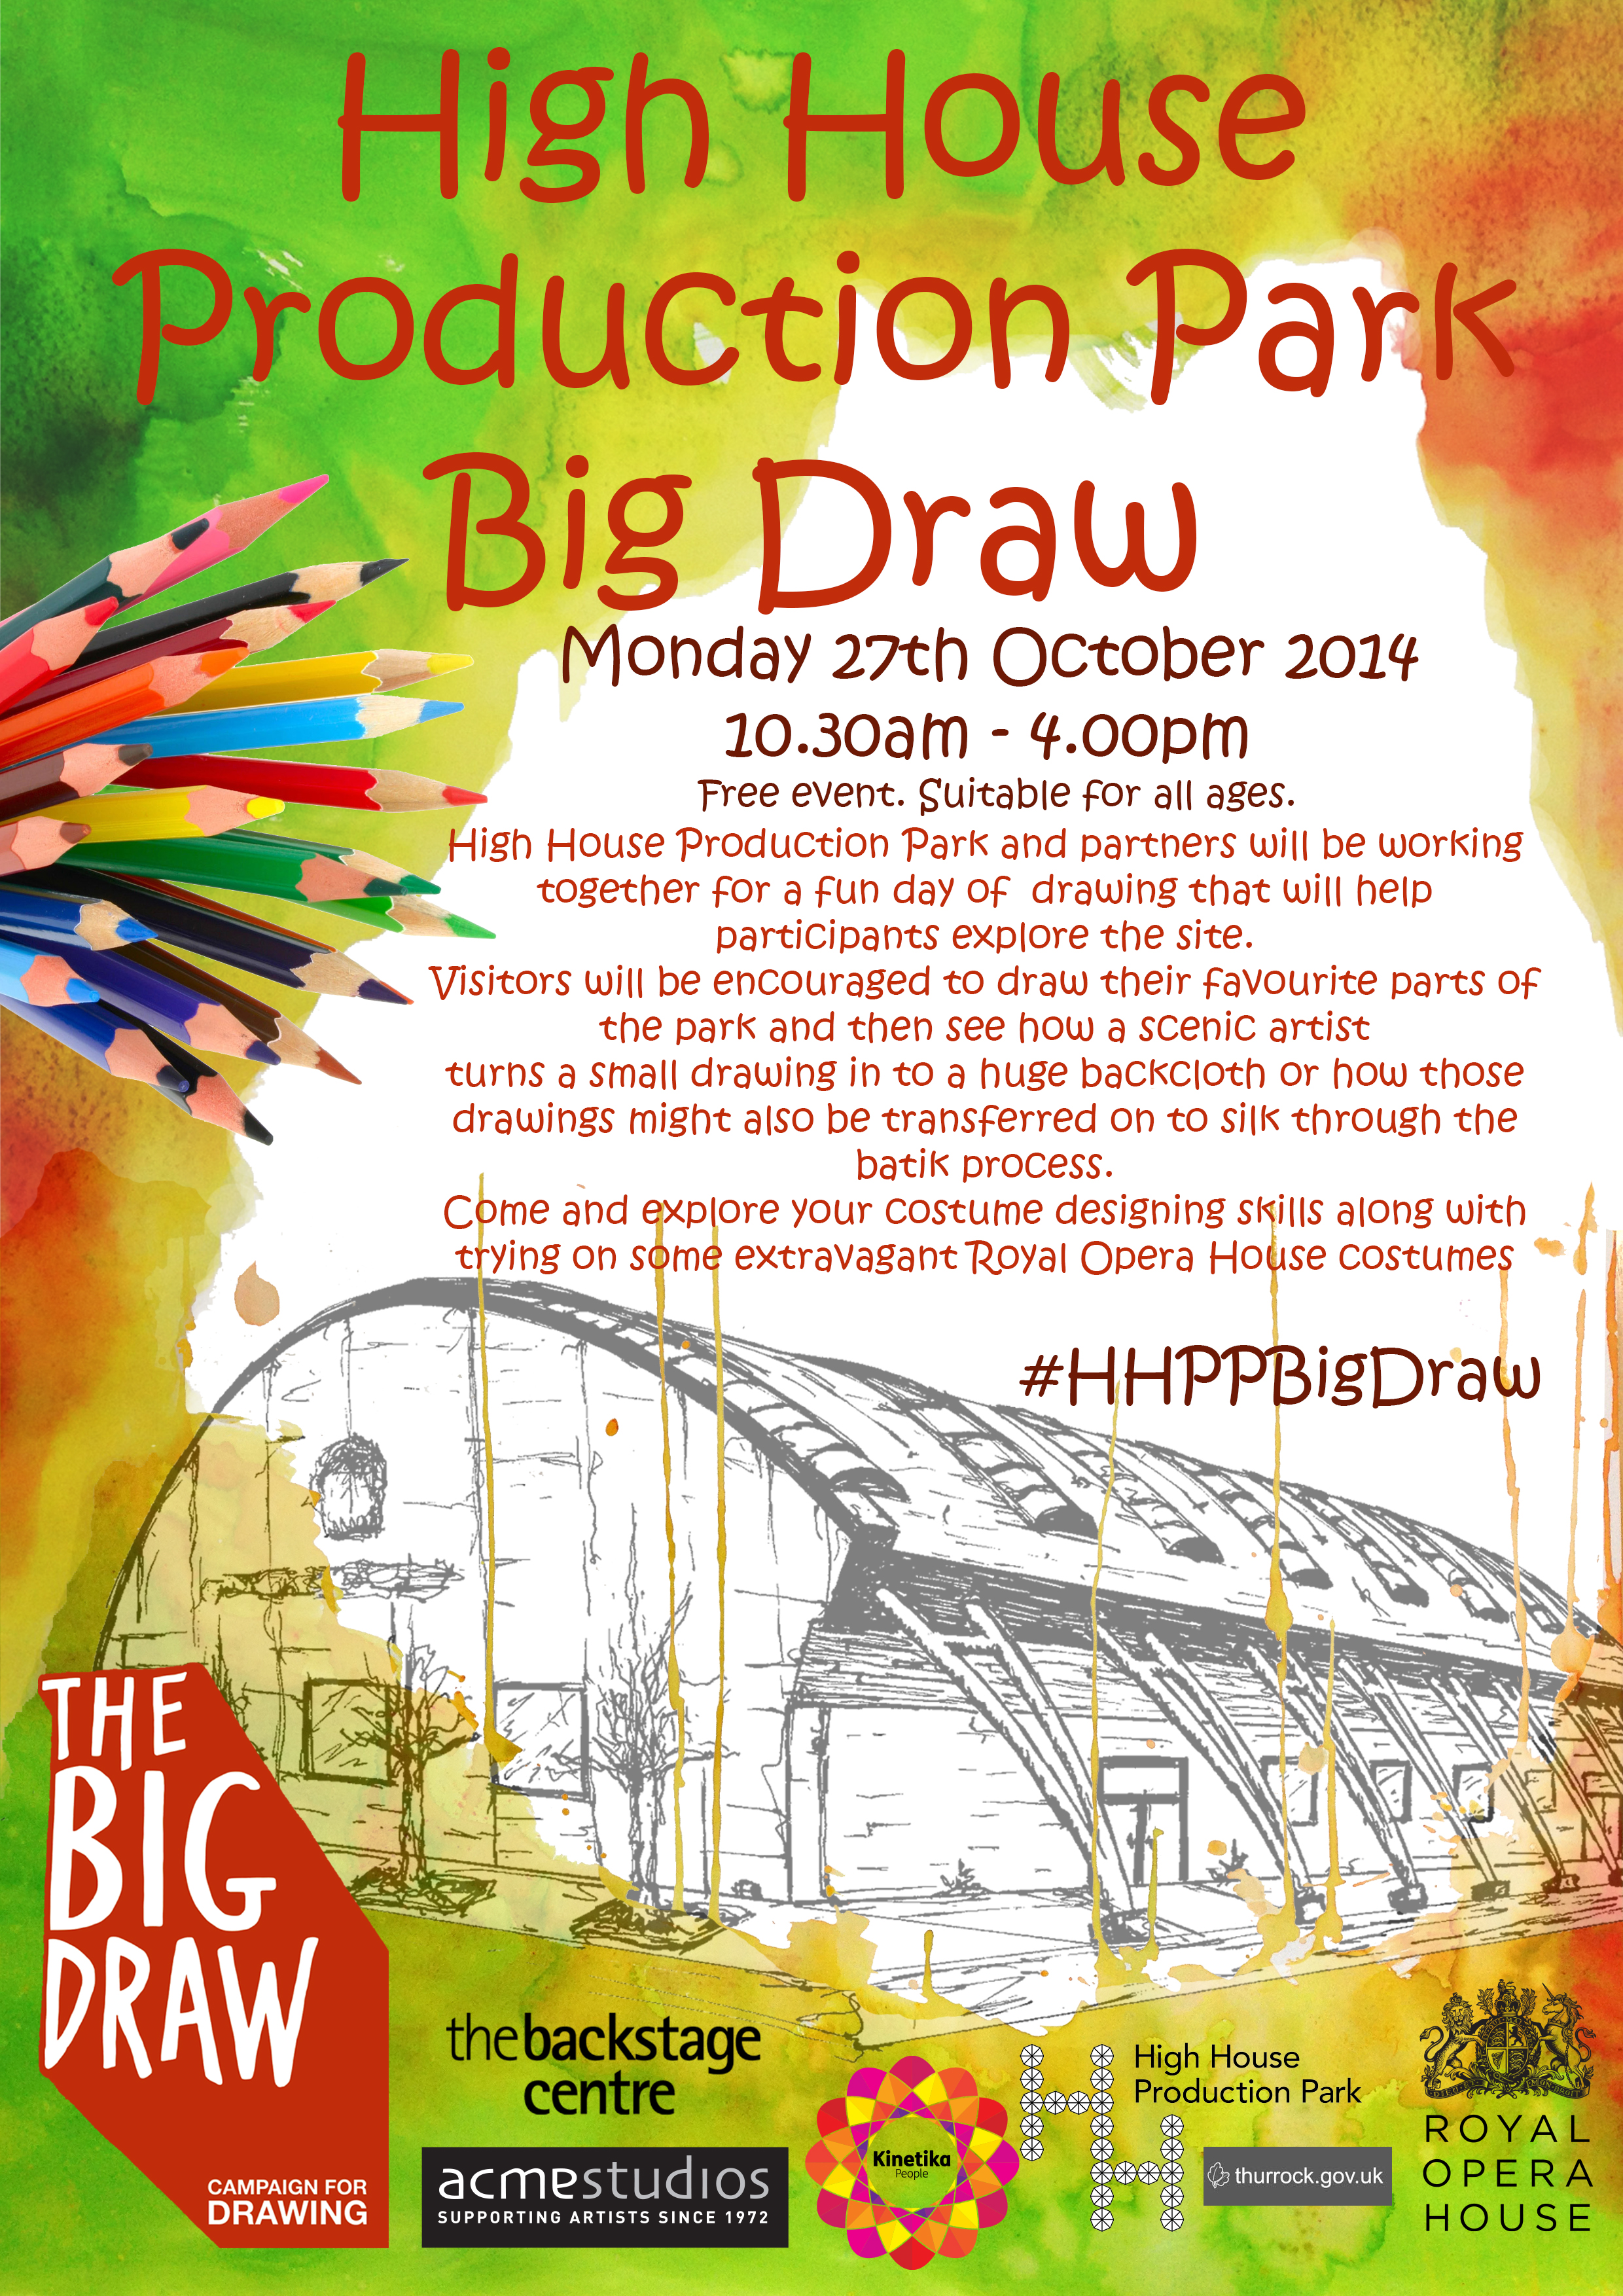 The Big Draw 2014 - Commission for High House Production Park